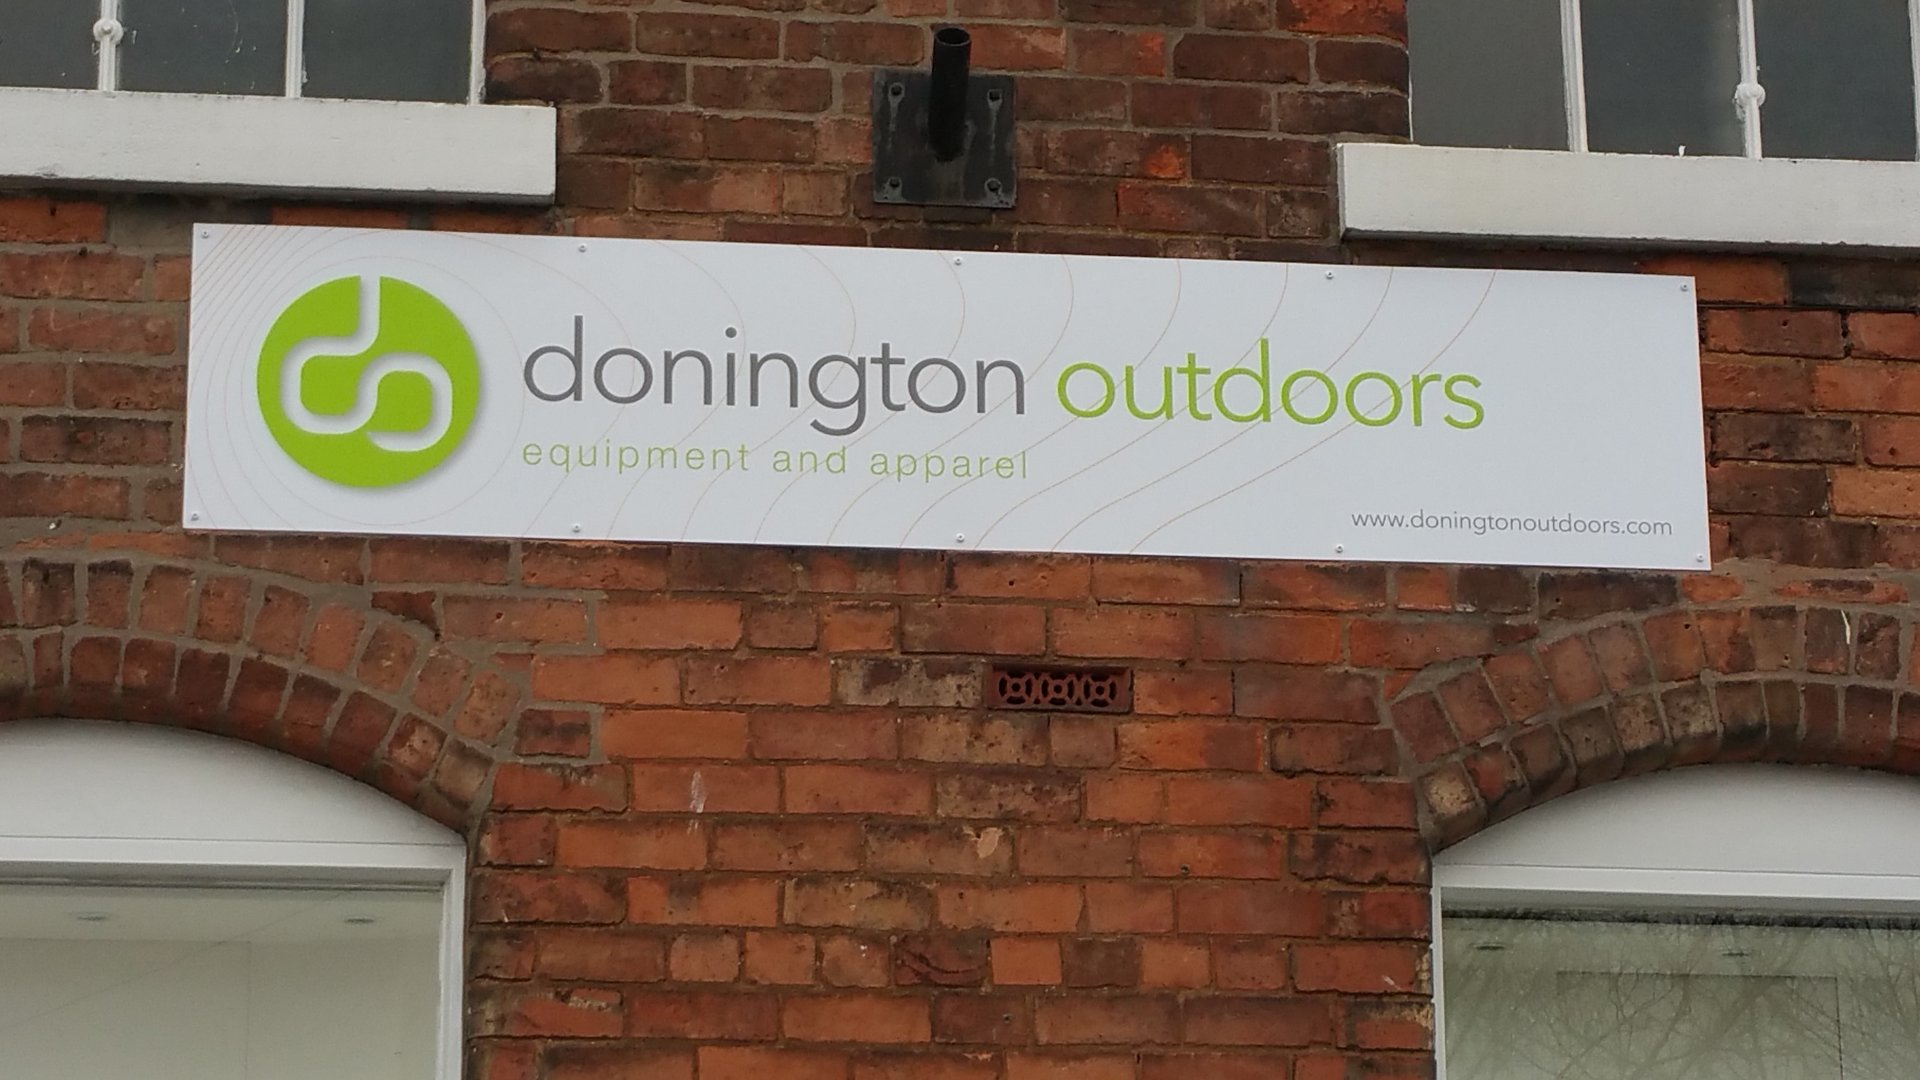 donington outdoors